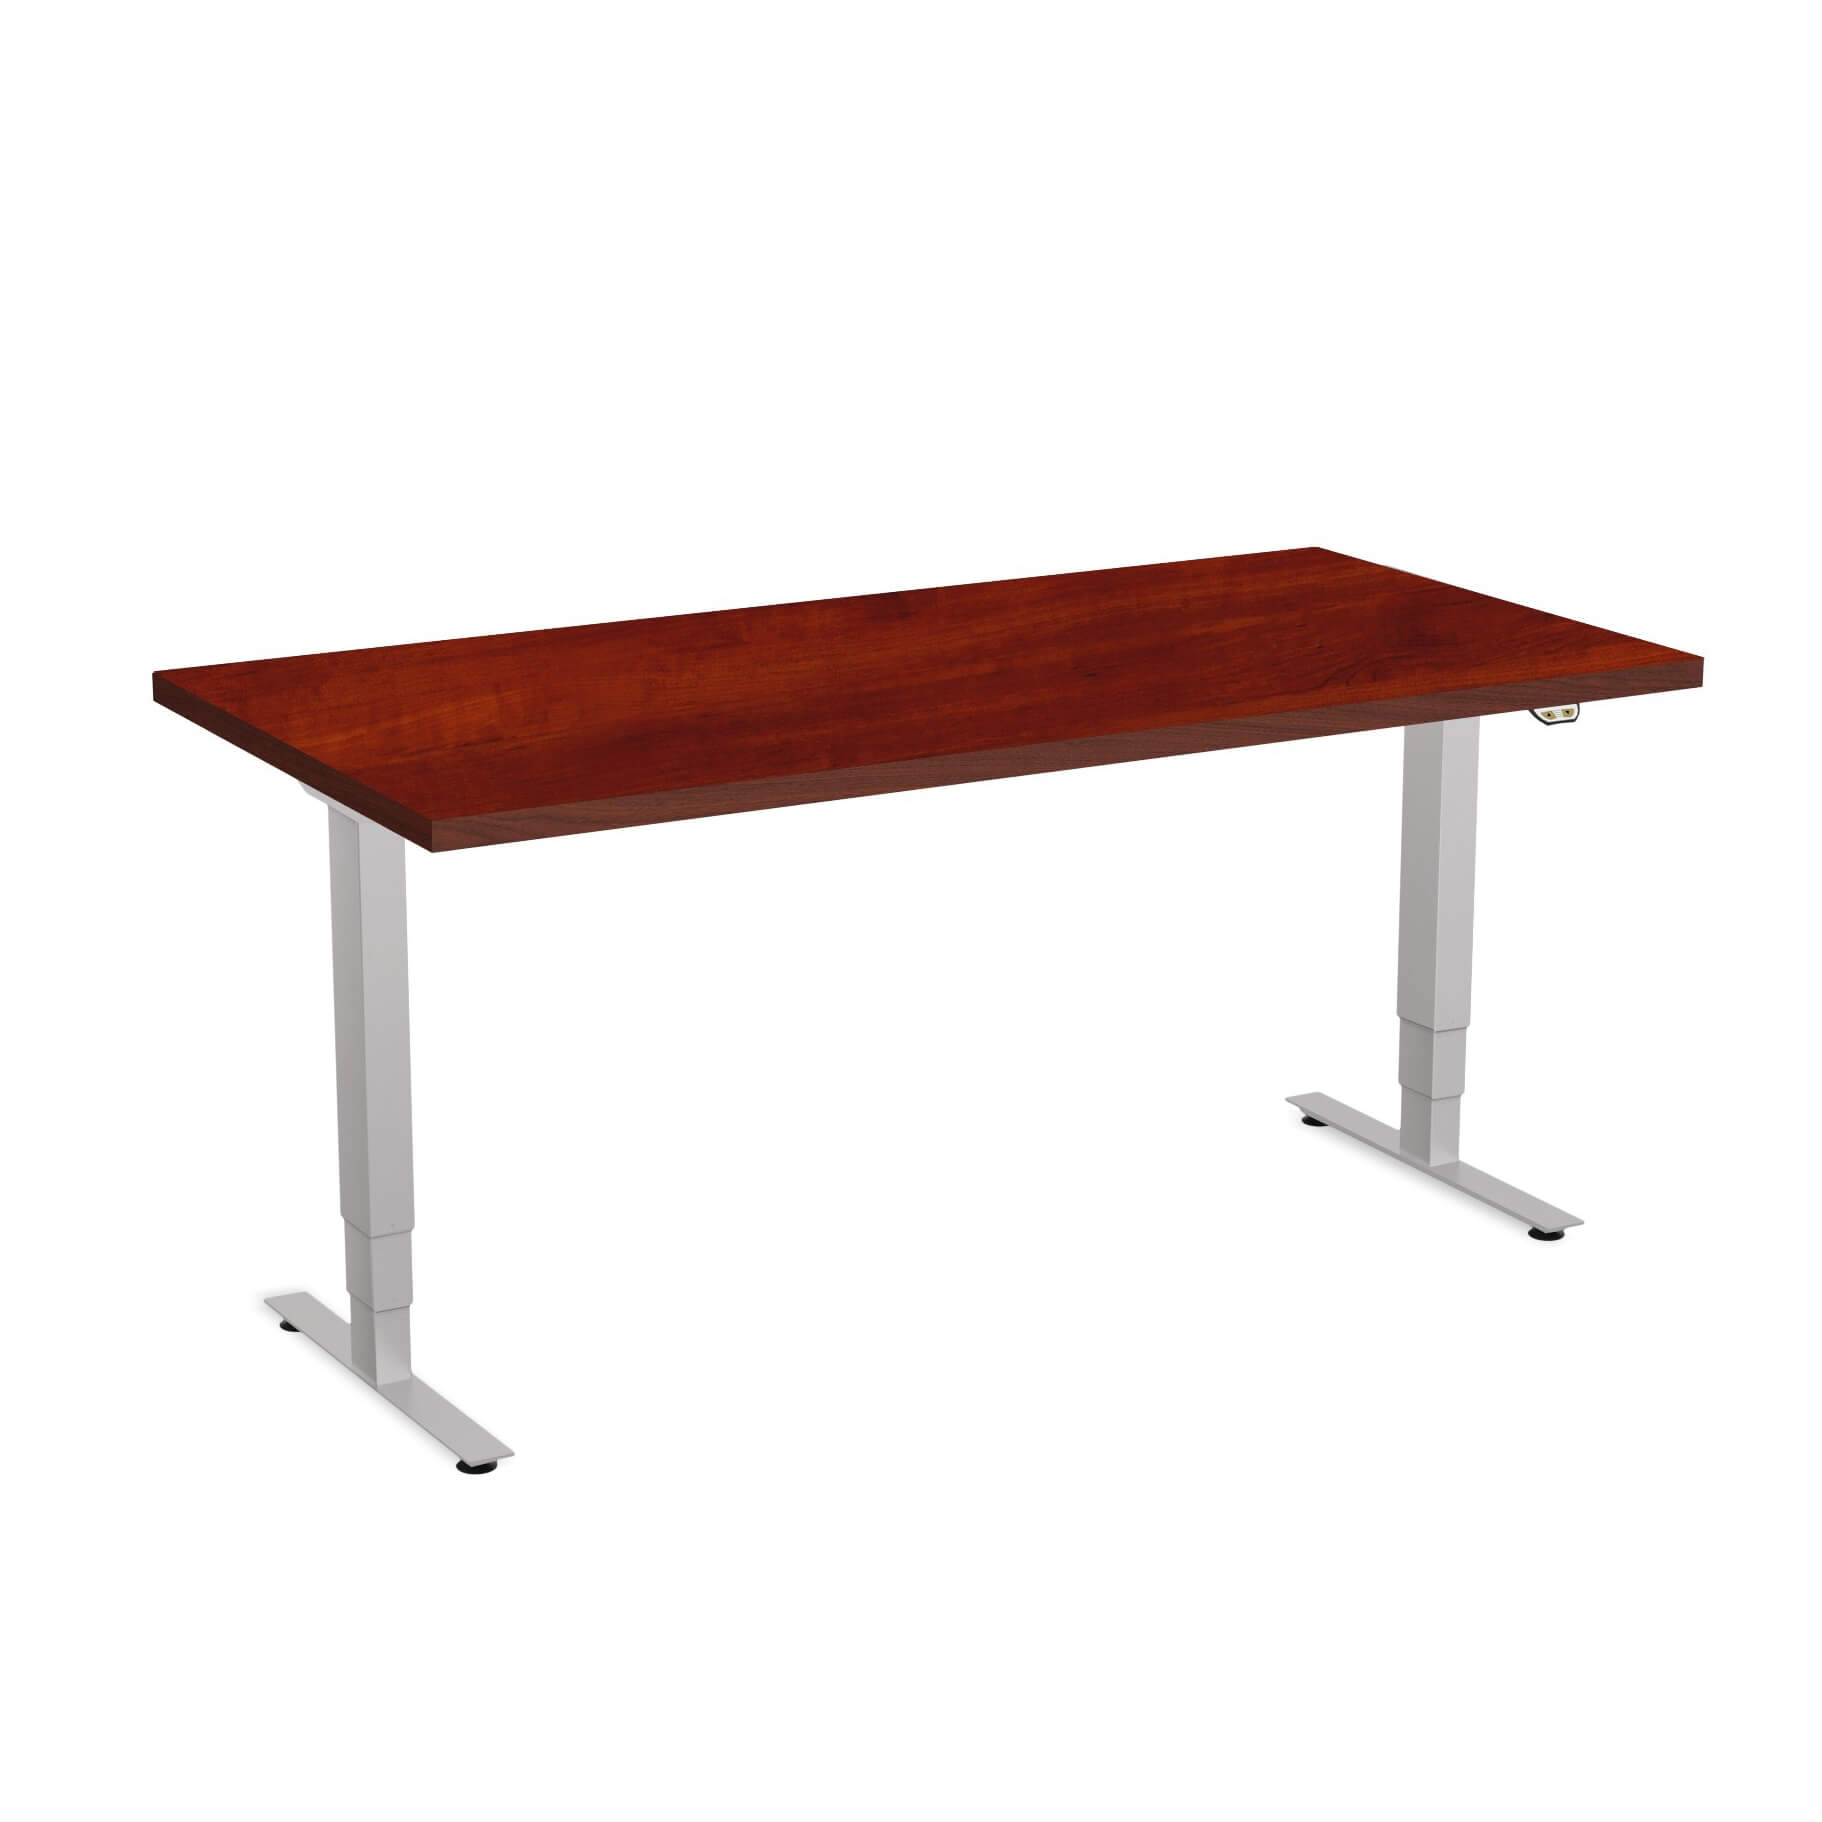 sit-stand-desk-height-adjustable-table-electric.jpg